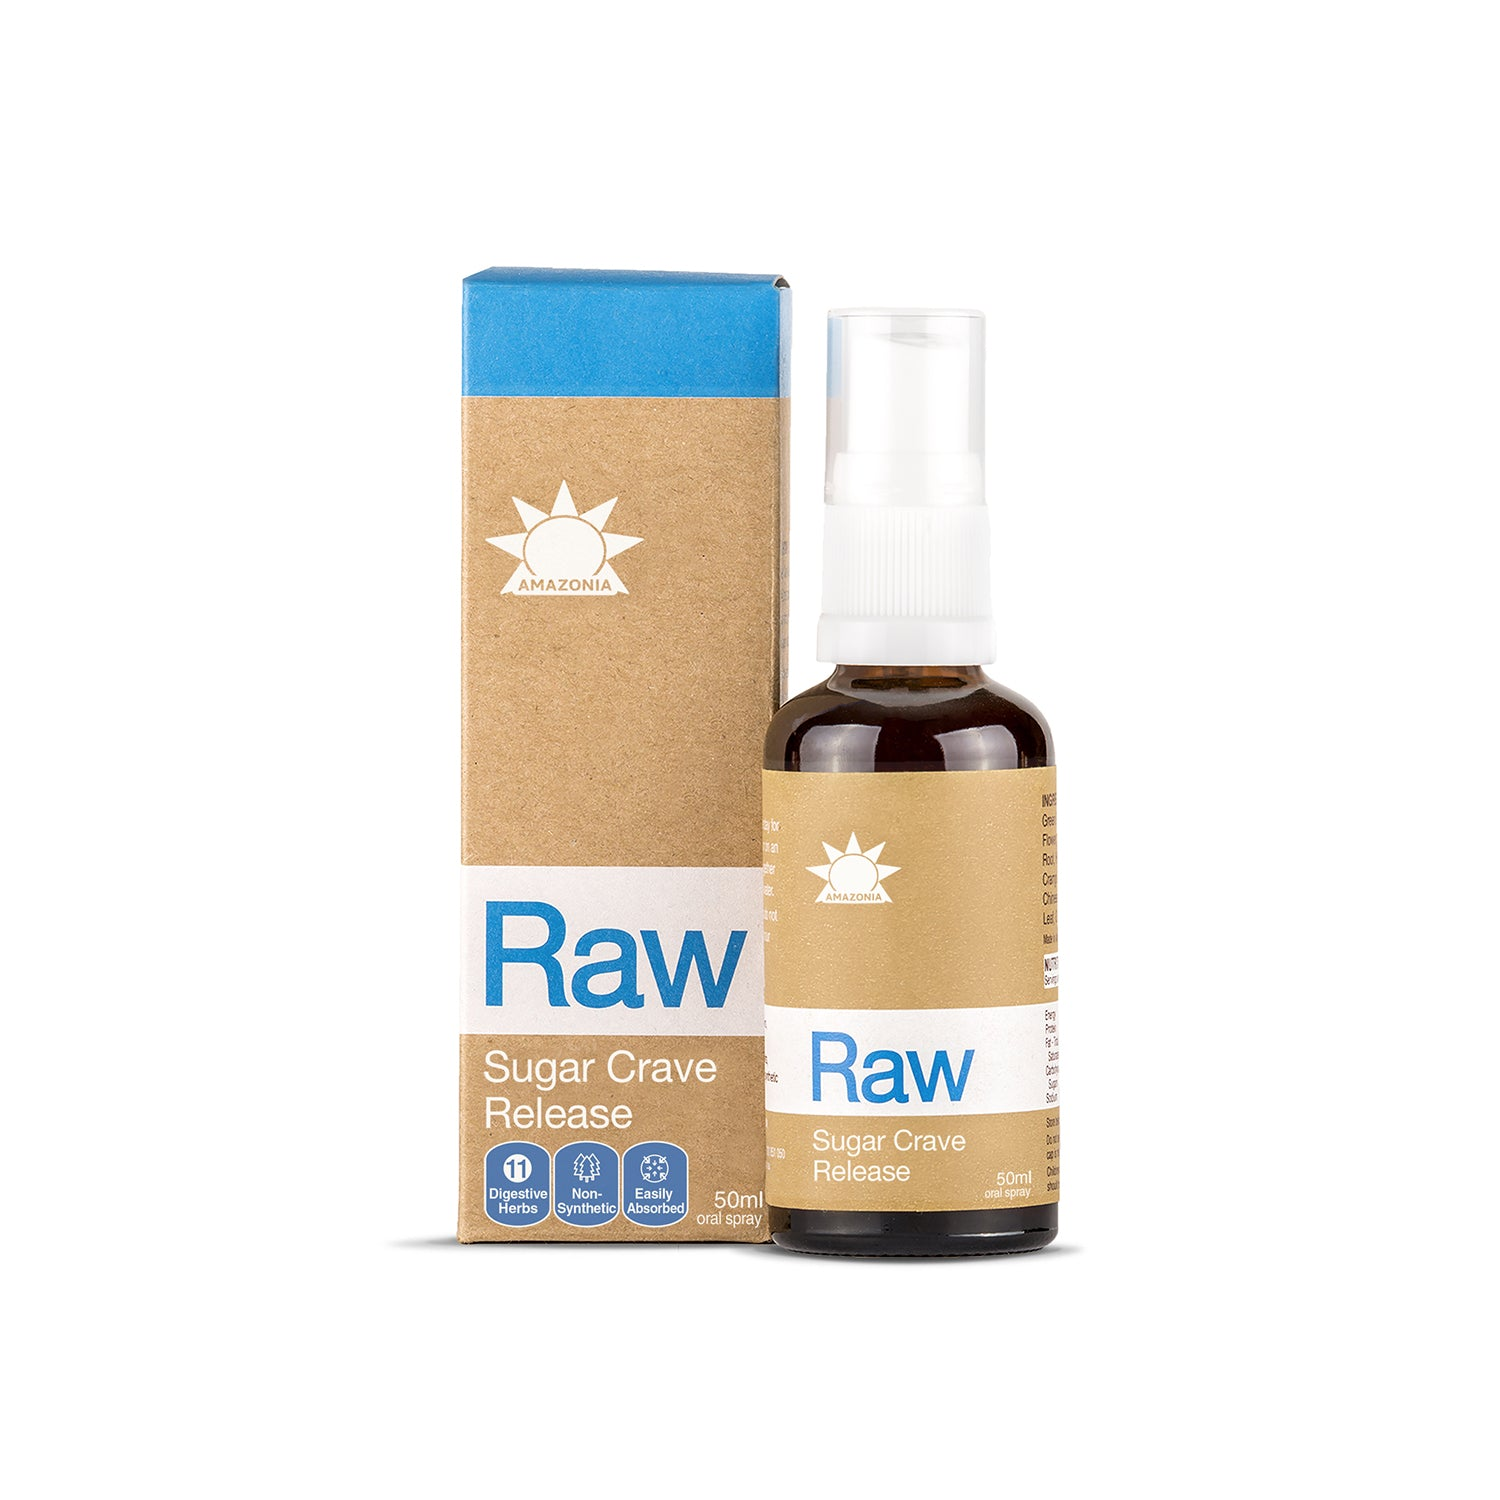 KETO RAW SUGAR CRAVE RELEASE